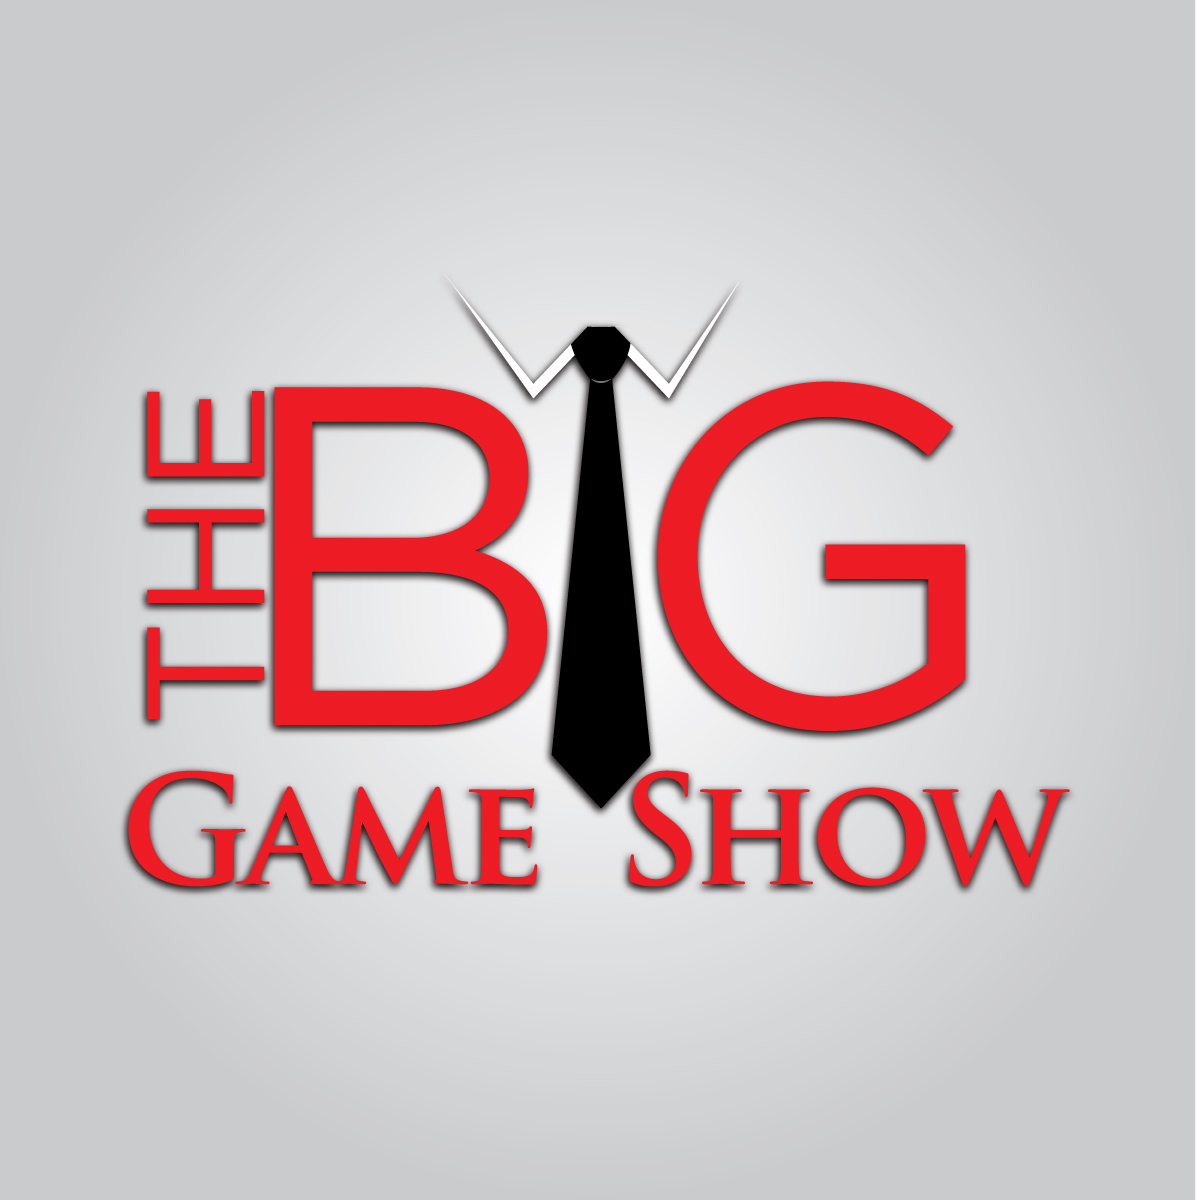 the big game show logo hiretheworld. Black Bedroom Furniture Sets. Home Design Ideas